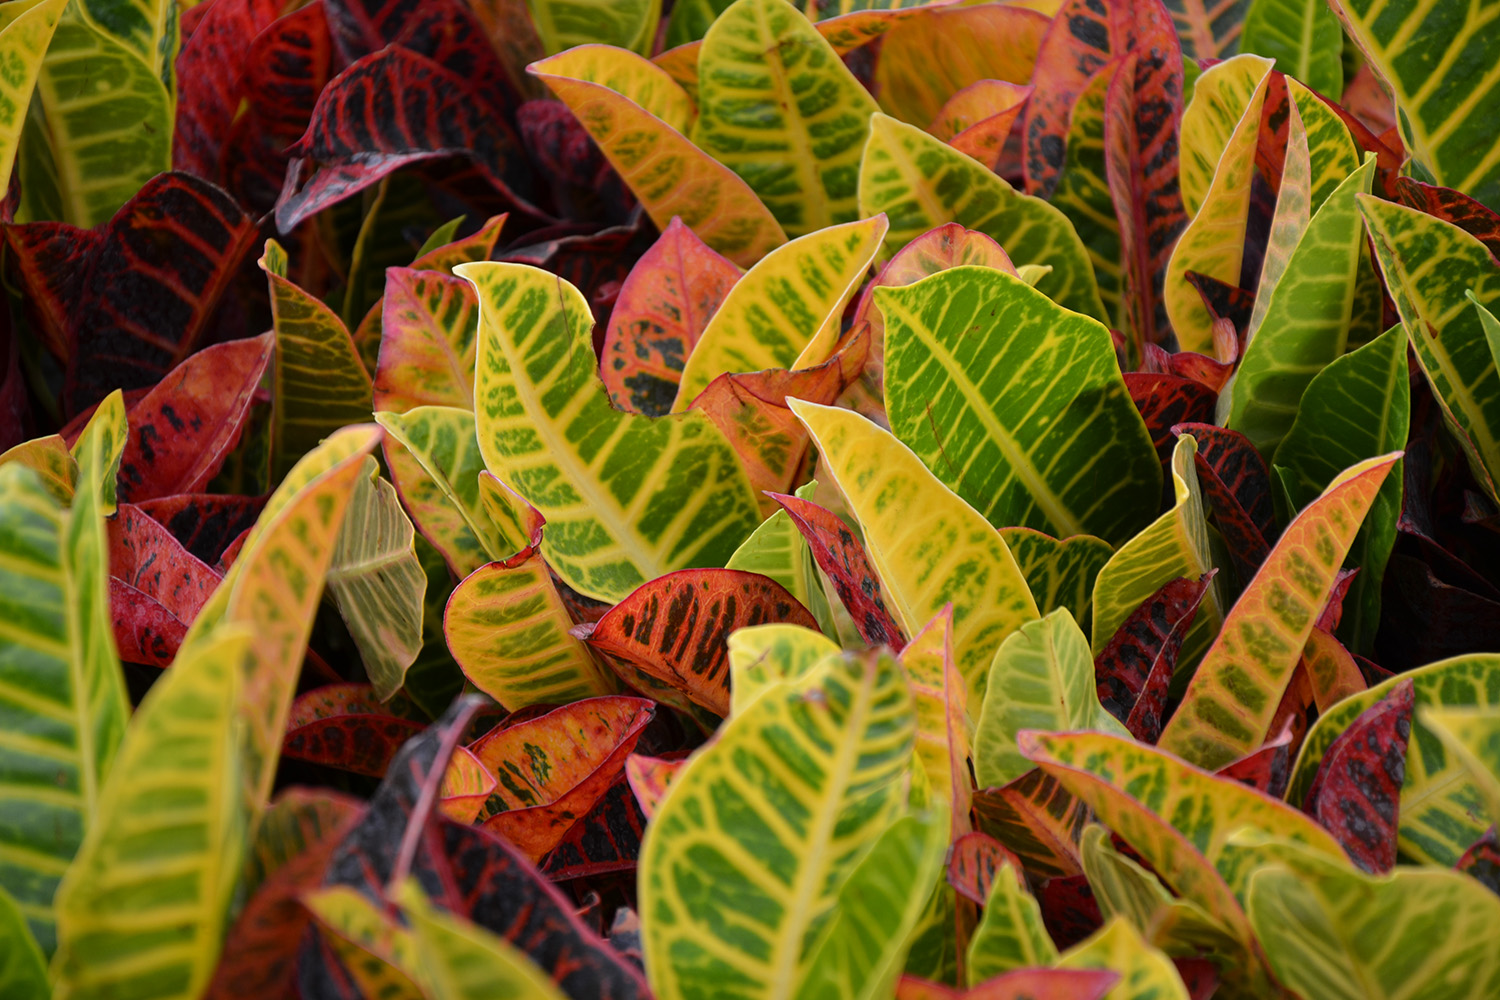 Croton, Clean Air Houseplants for sale at Patuxent Nursery